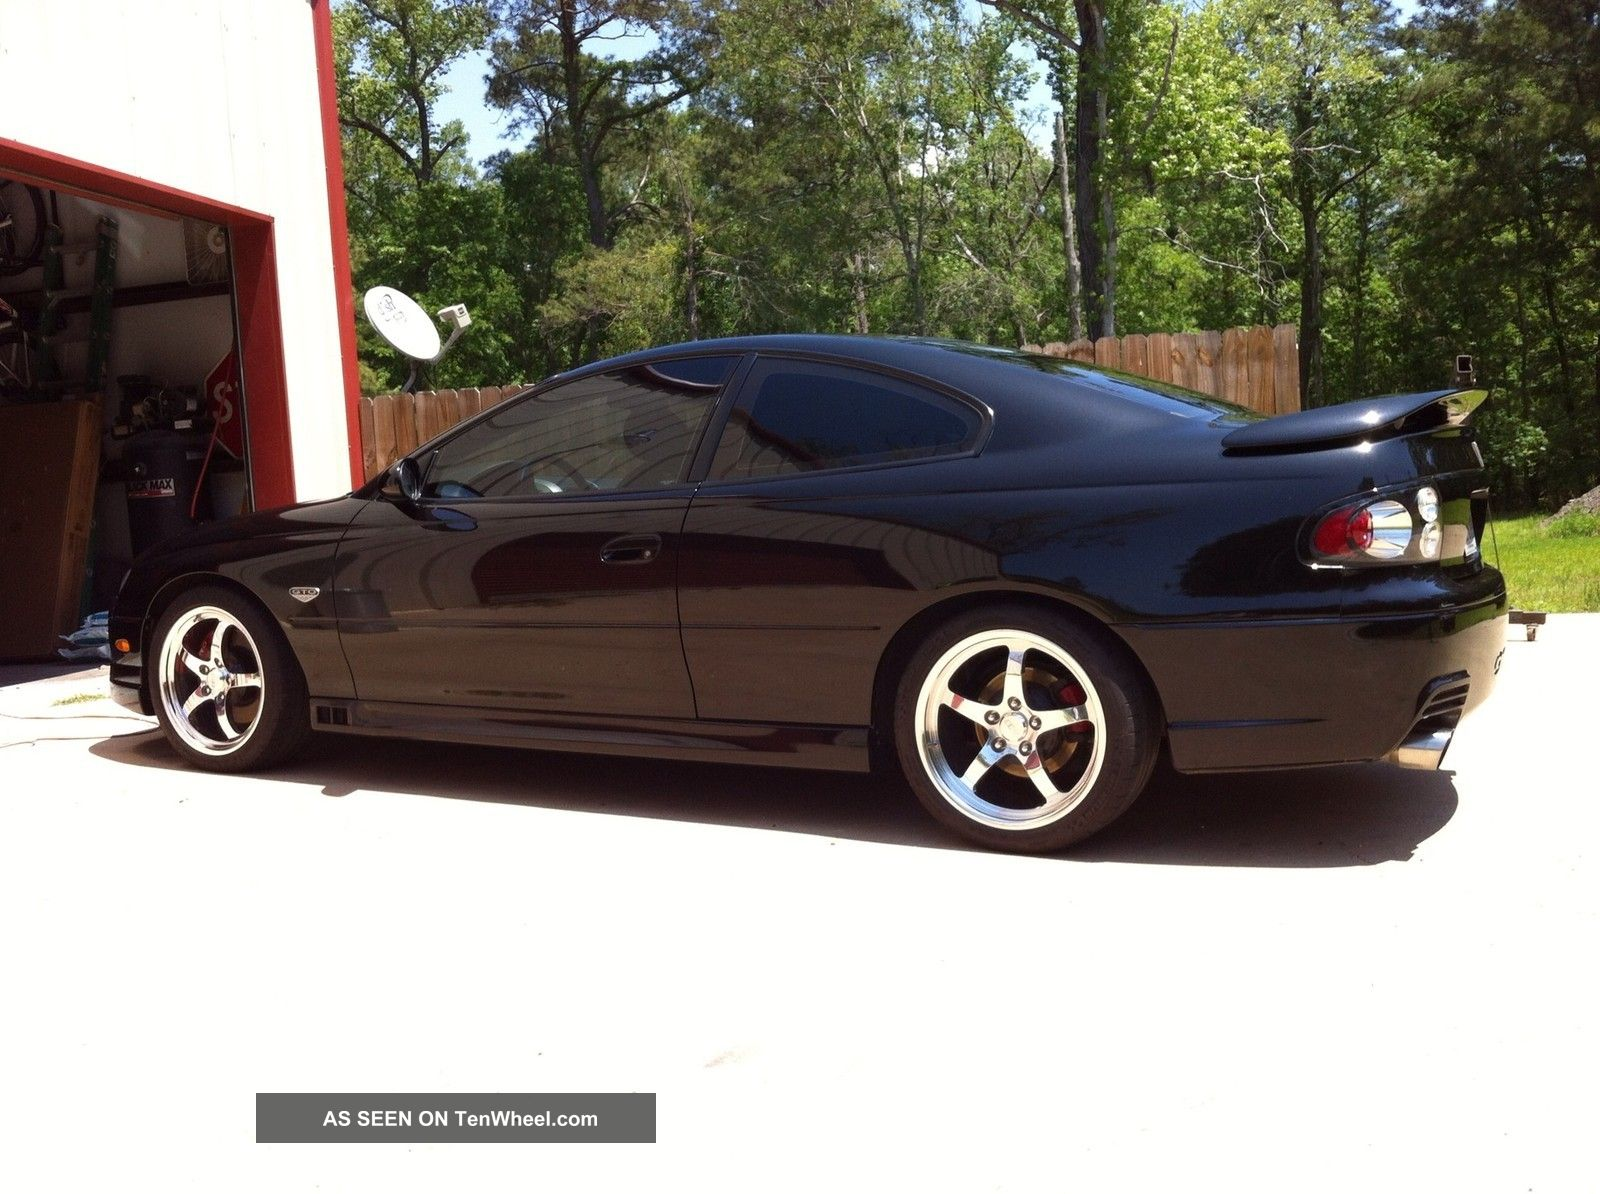 2006 Pontiac Gto Ccw Wheels Ls2 Heads Cam Lsx Intake 6 Speed Fast And